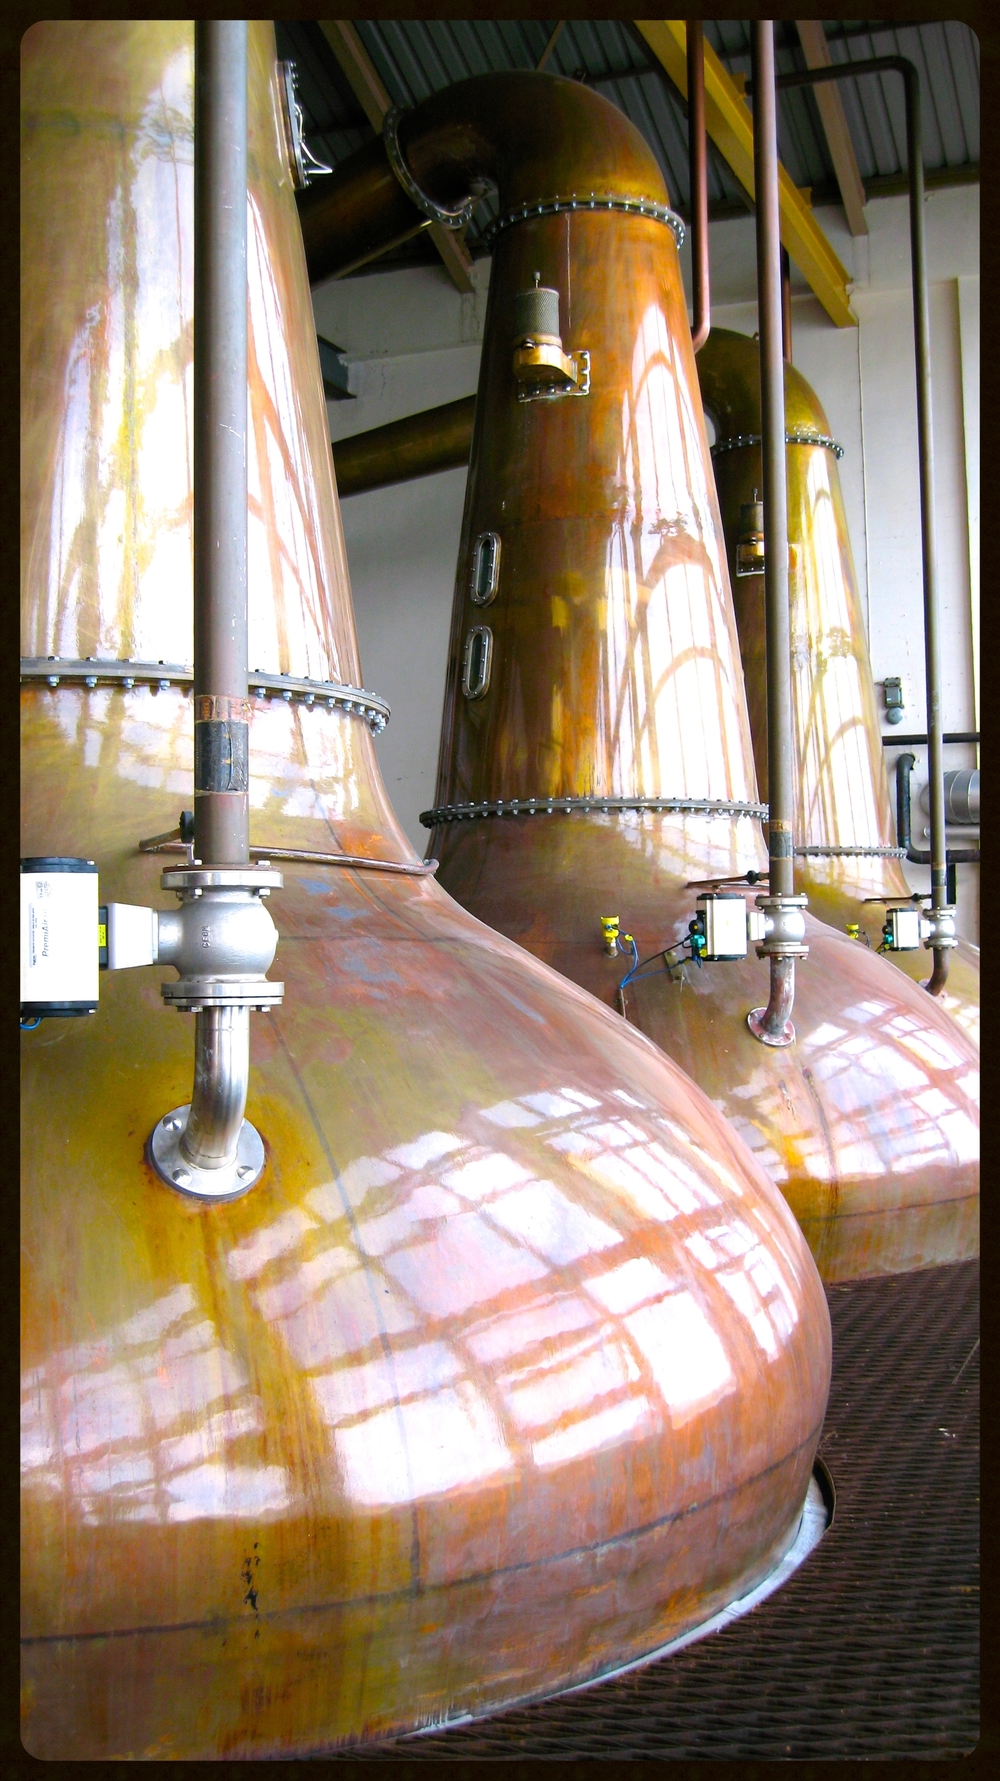 Stills at Caol Ila, Islay.